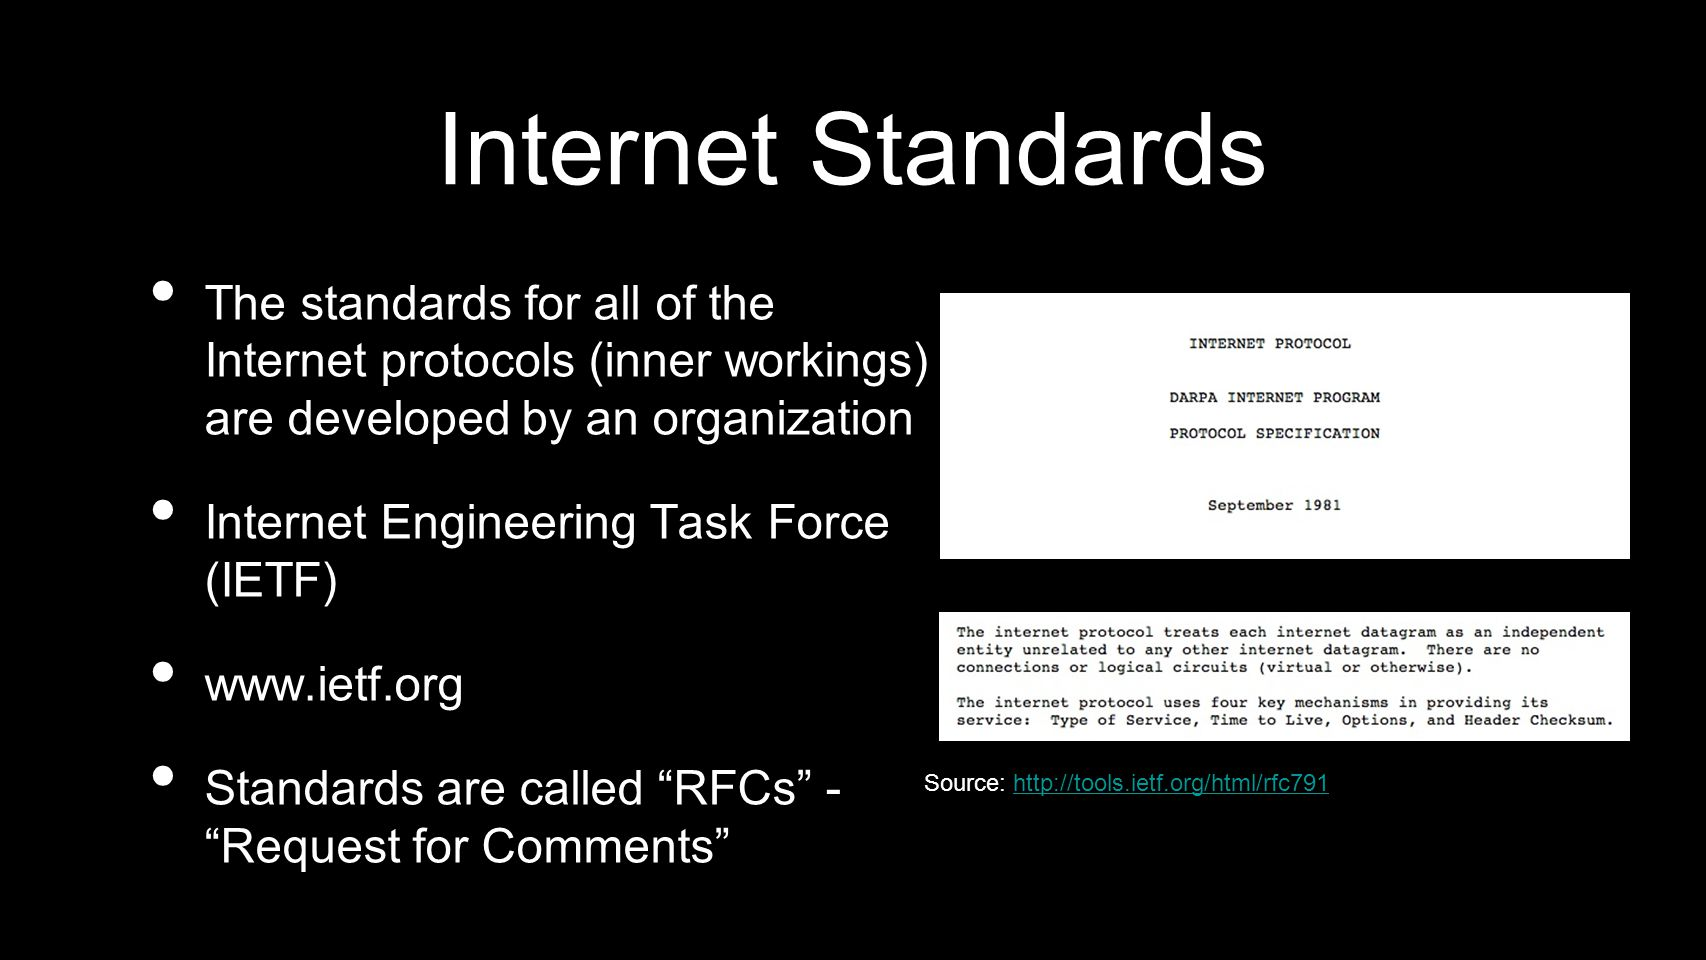 Source: http://tools.ietf.org/html/rfc791